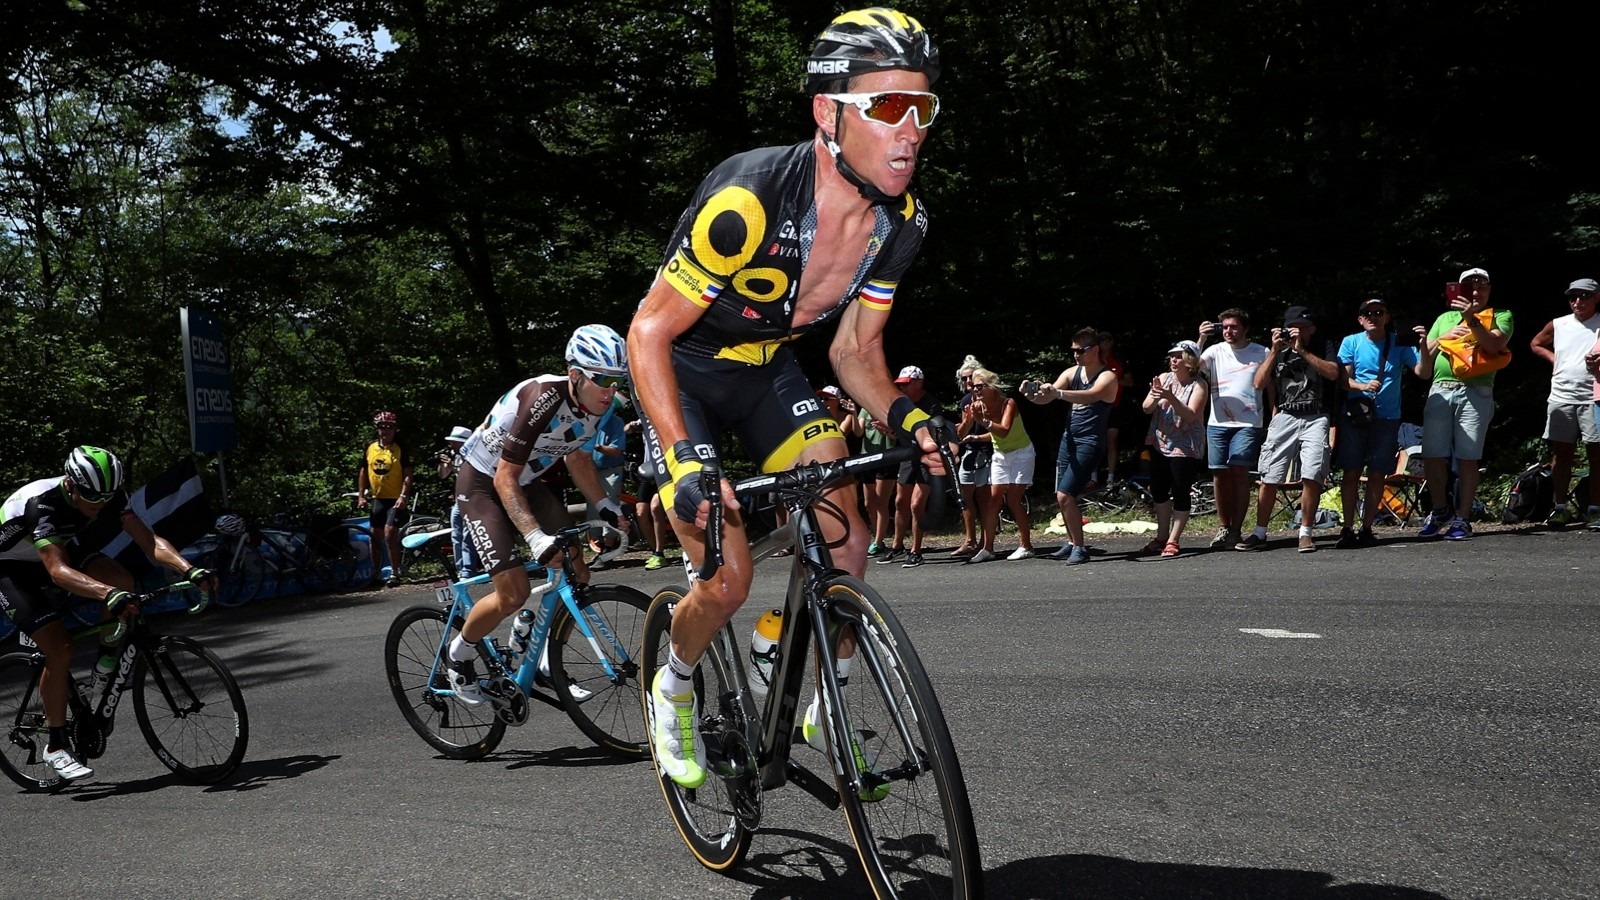 Thomas Voeckler is known for his breakaways